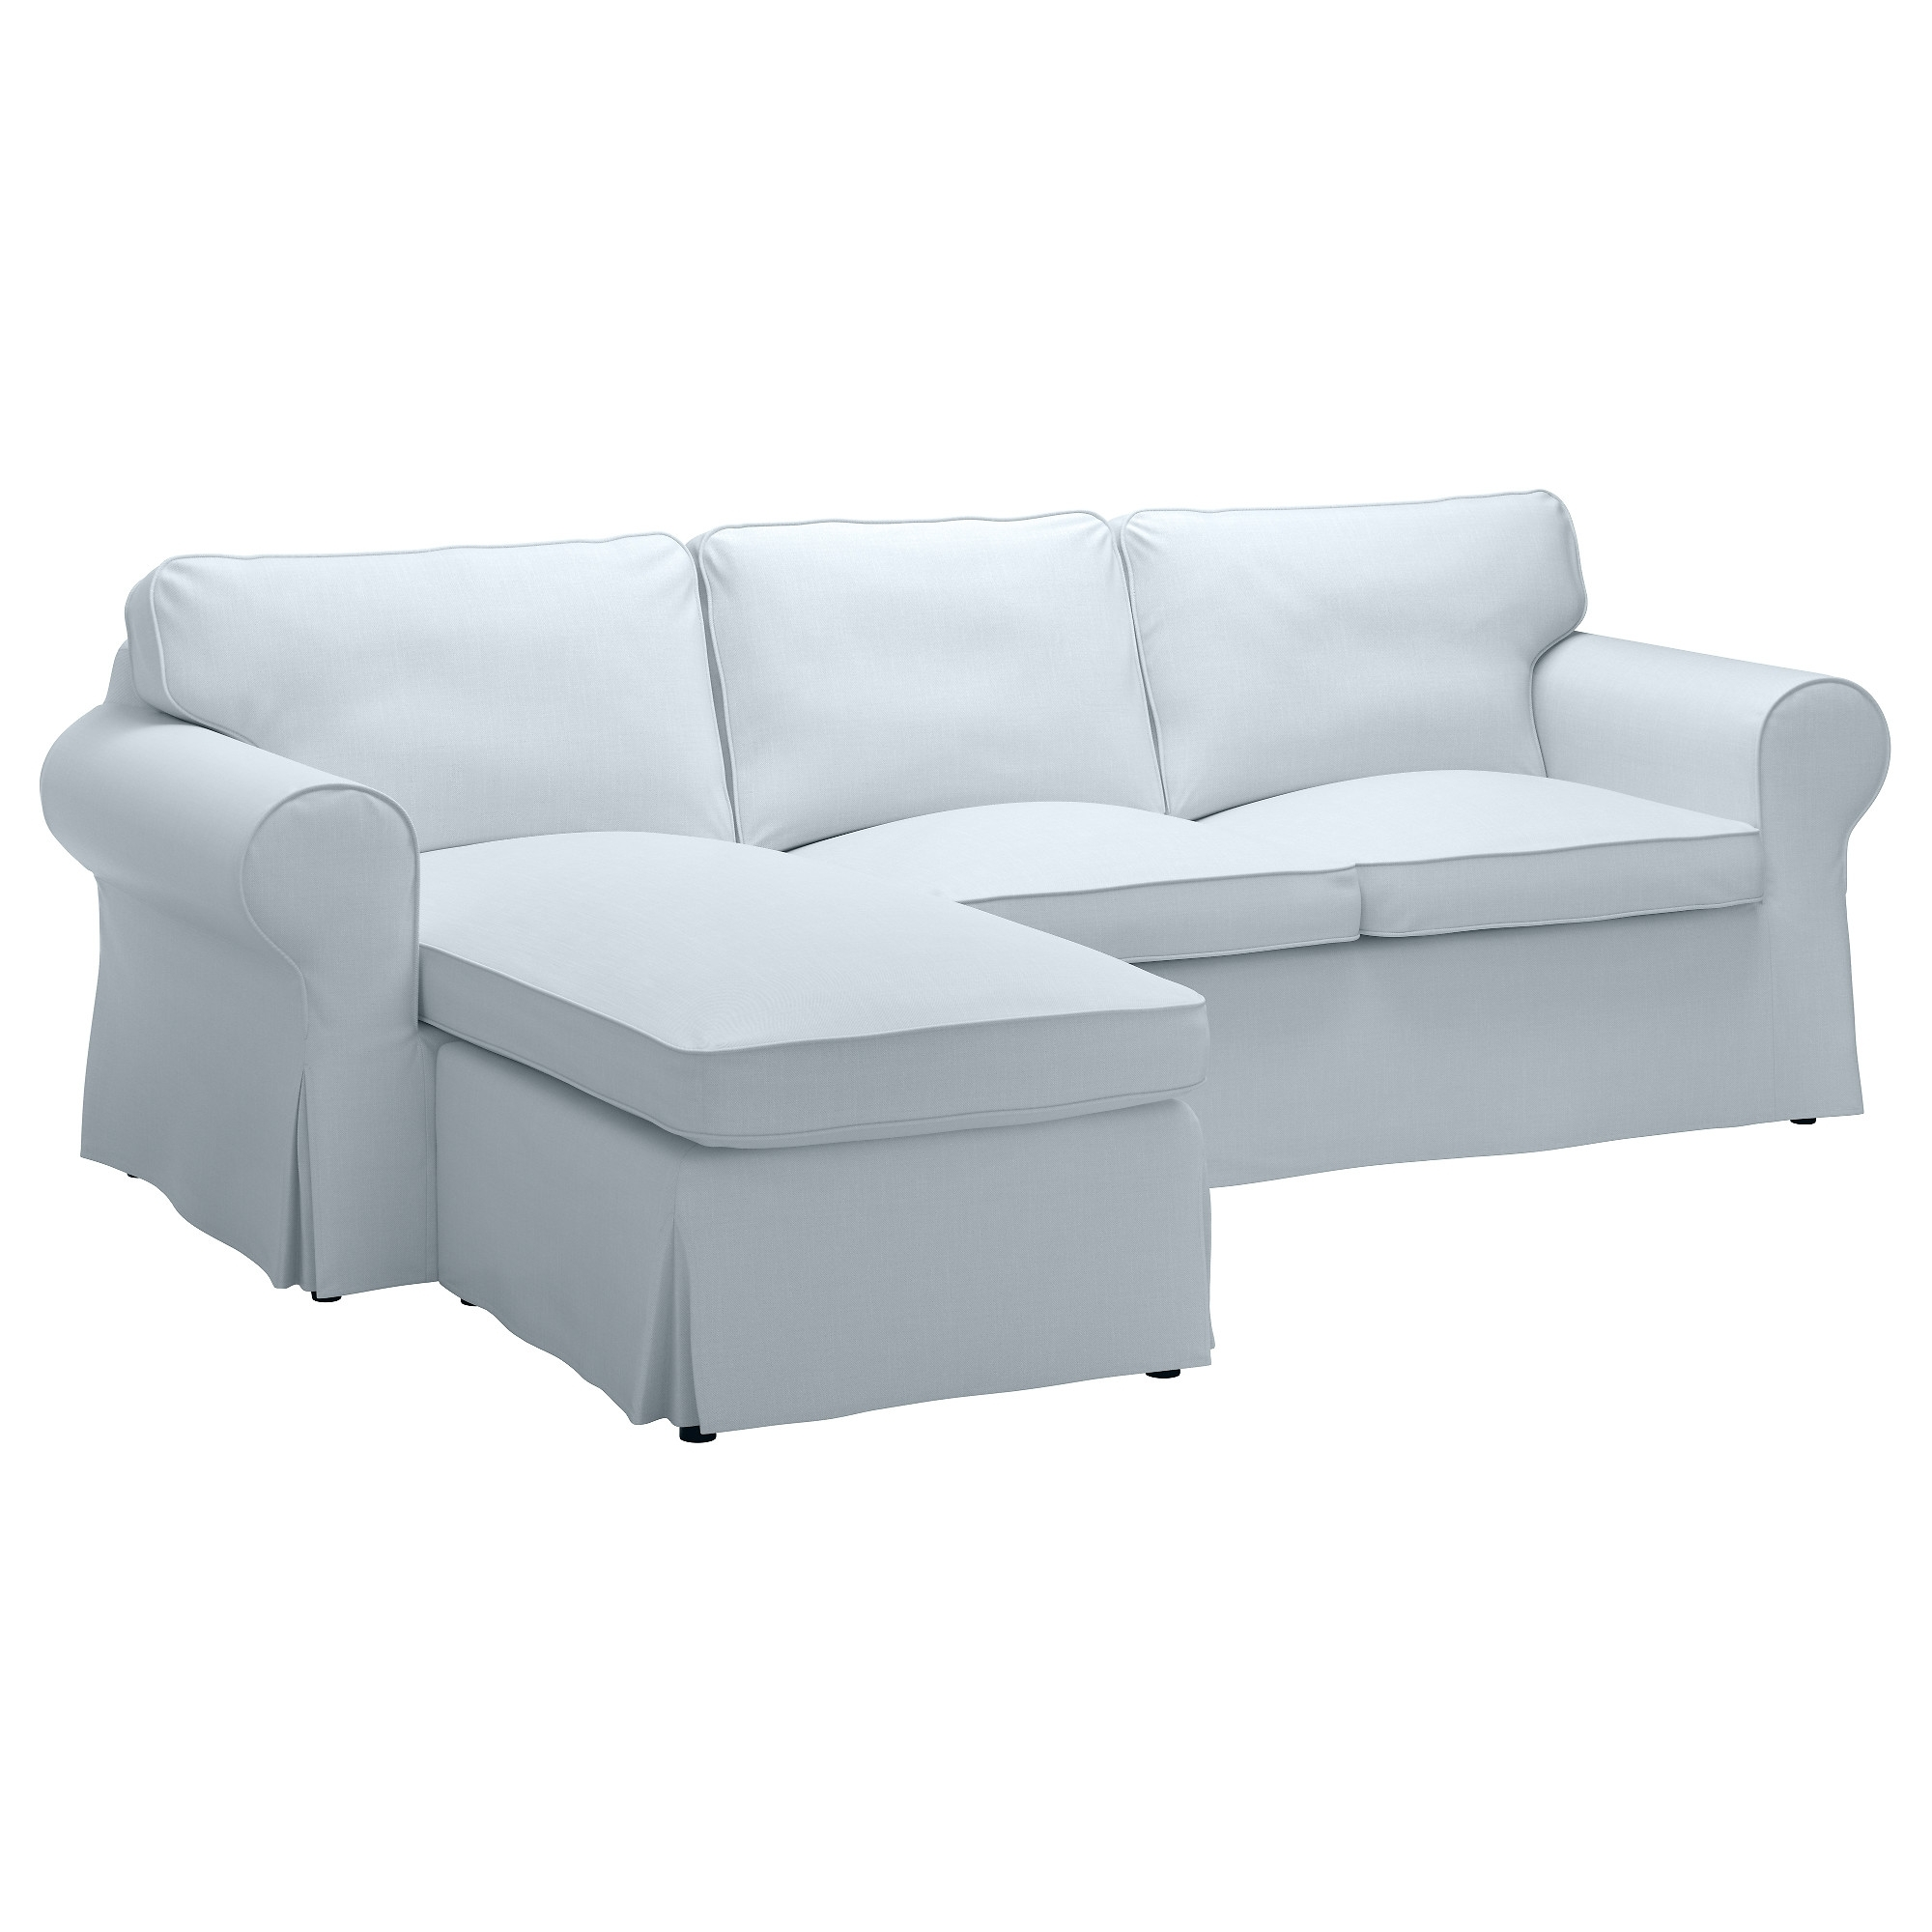 Fashionable Loveseats With Chaise Lounge Throughout Ektorp Sofa – With Chaise/nordvalla Light Blue – Ikea (View 5 of 15)